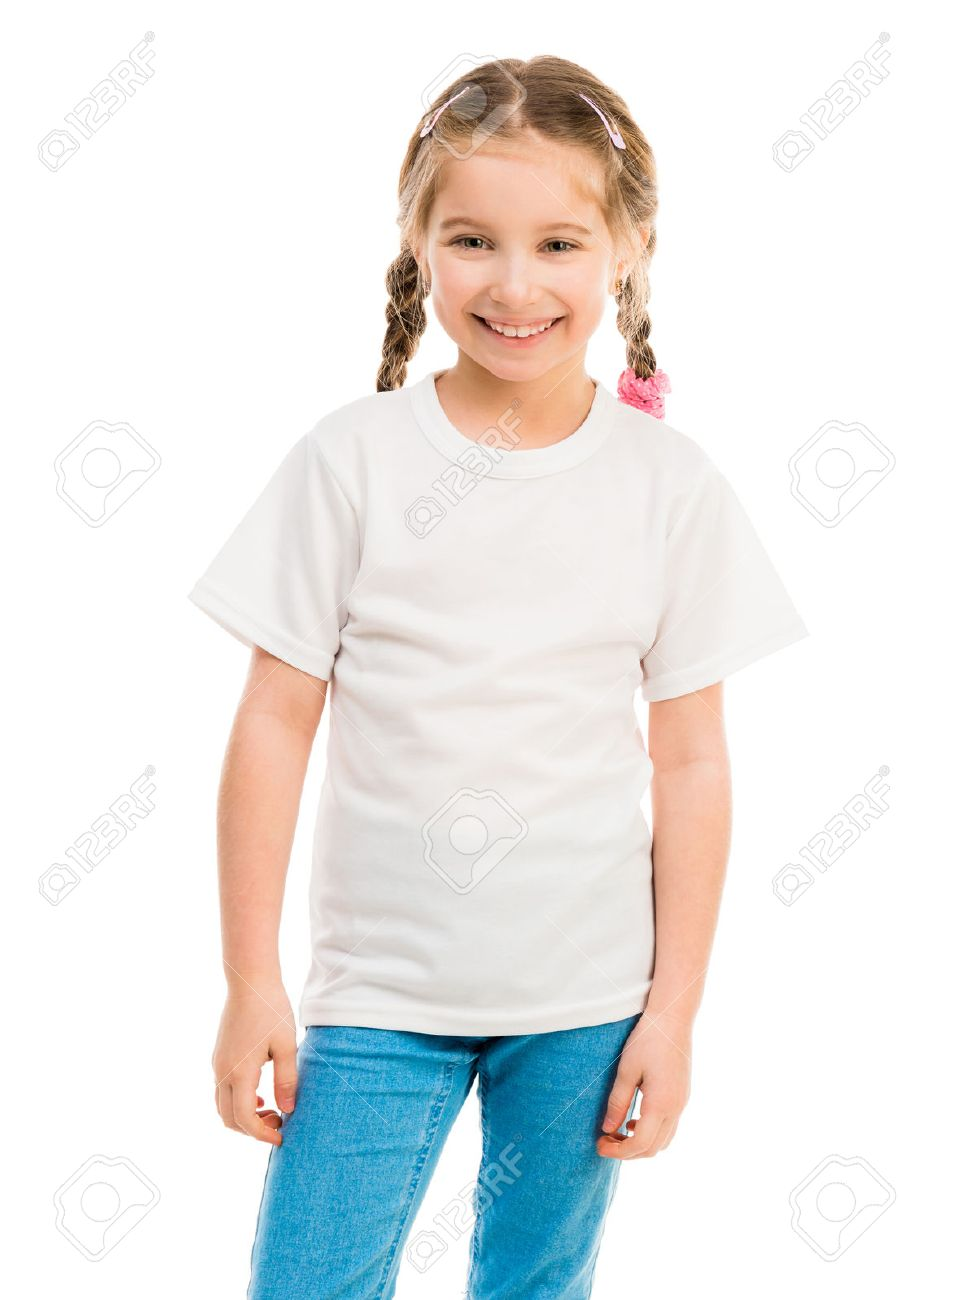 a4ddd4a8f cute little girl in a white T-shirt and blue jeans on a white background